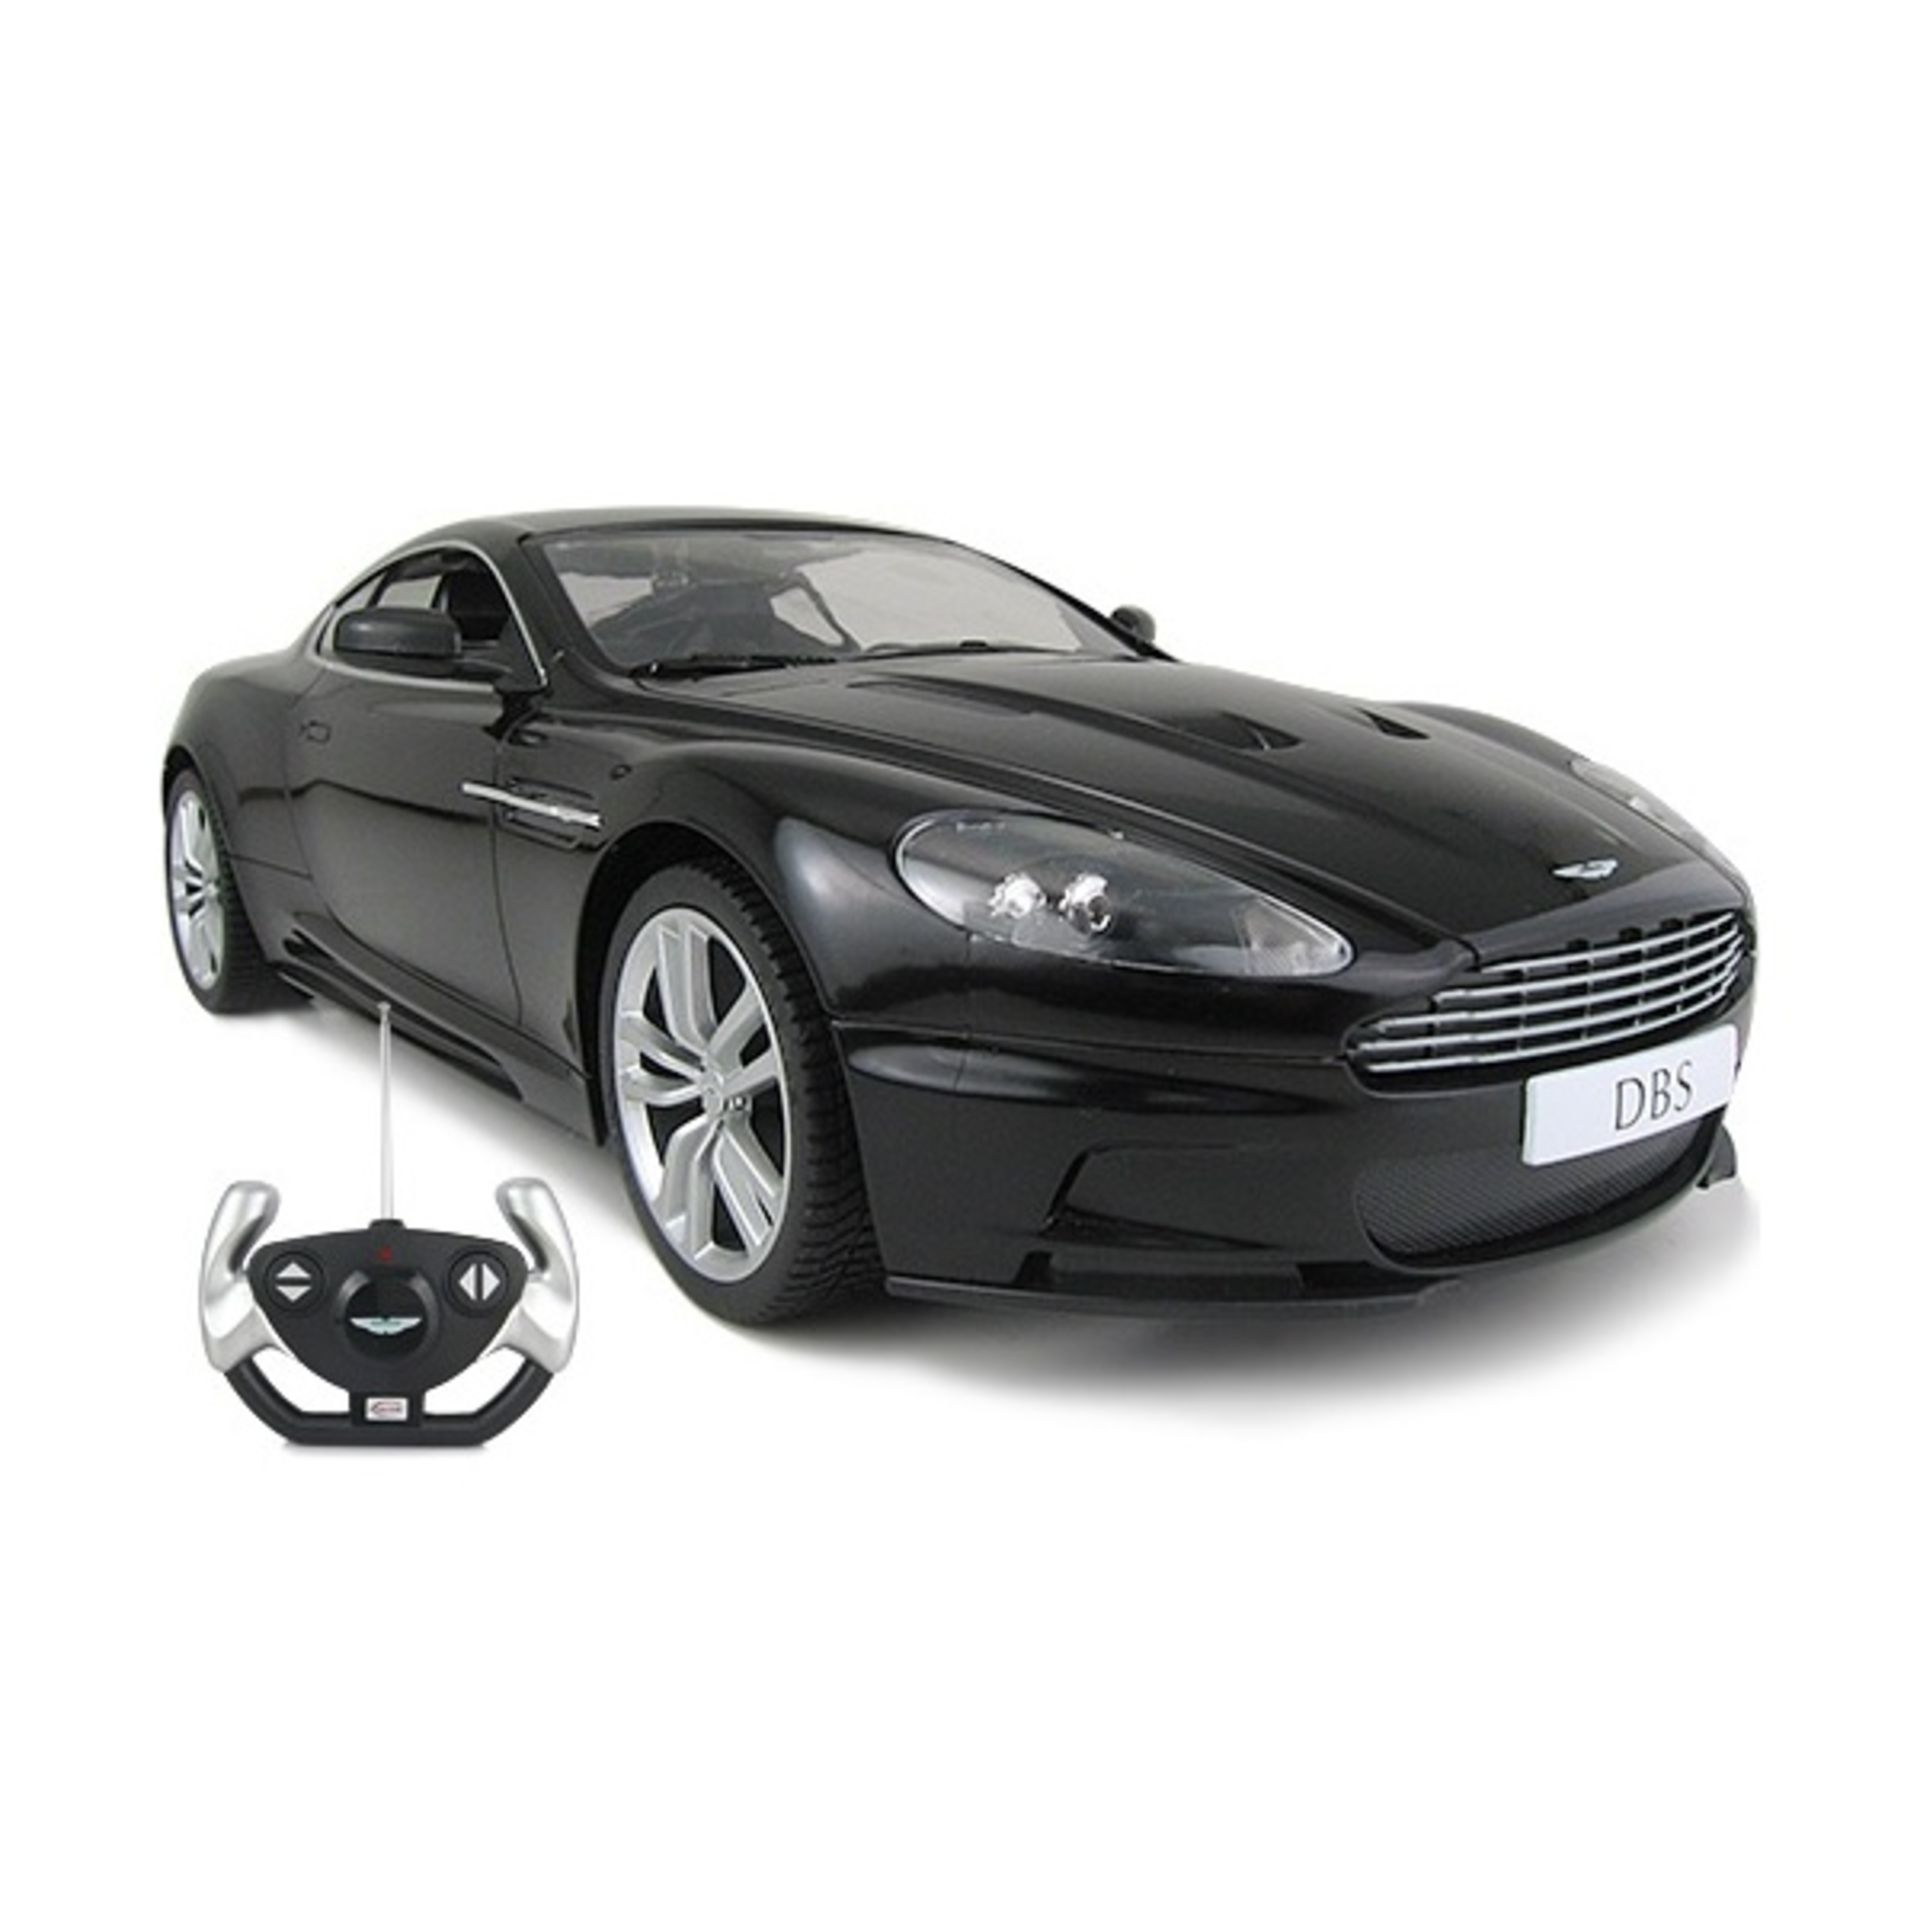 Lot 11667 - V Brand New Aston Martin DBS Coupe 1/10 Scale (Very Big) - Radio Control - Assorted Black & Silver